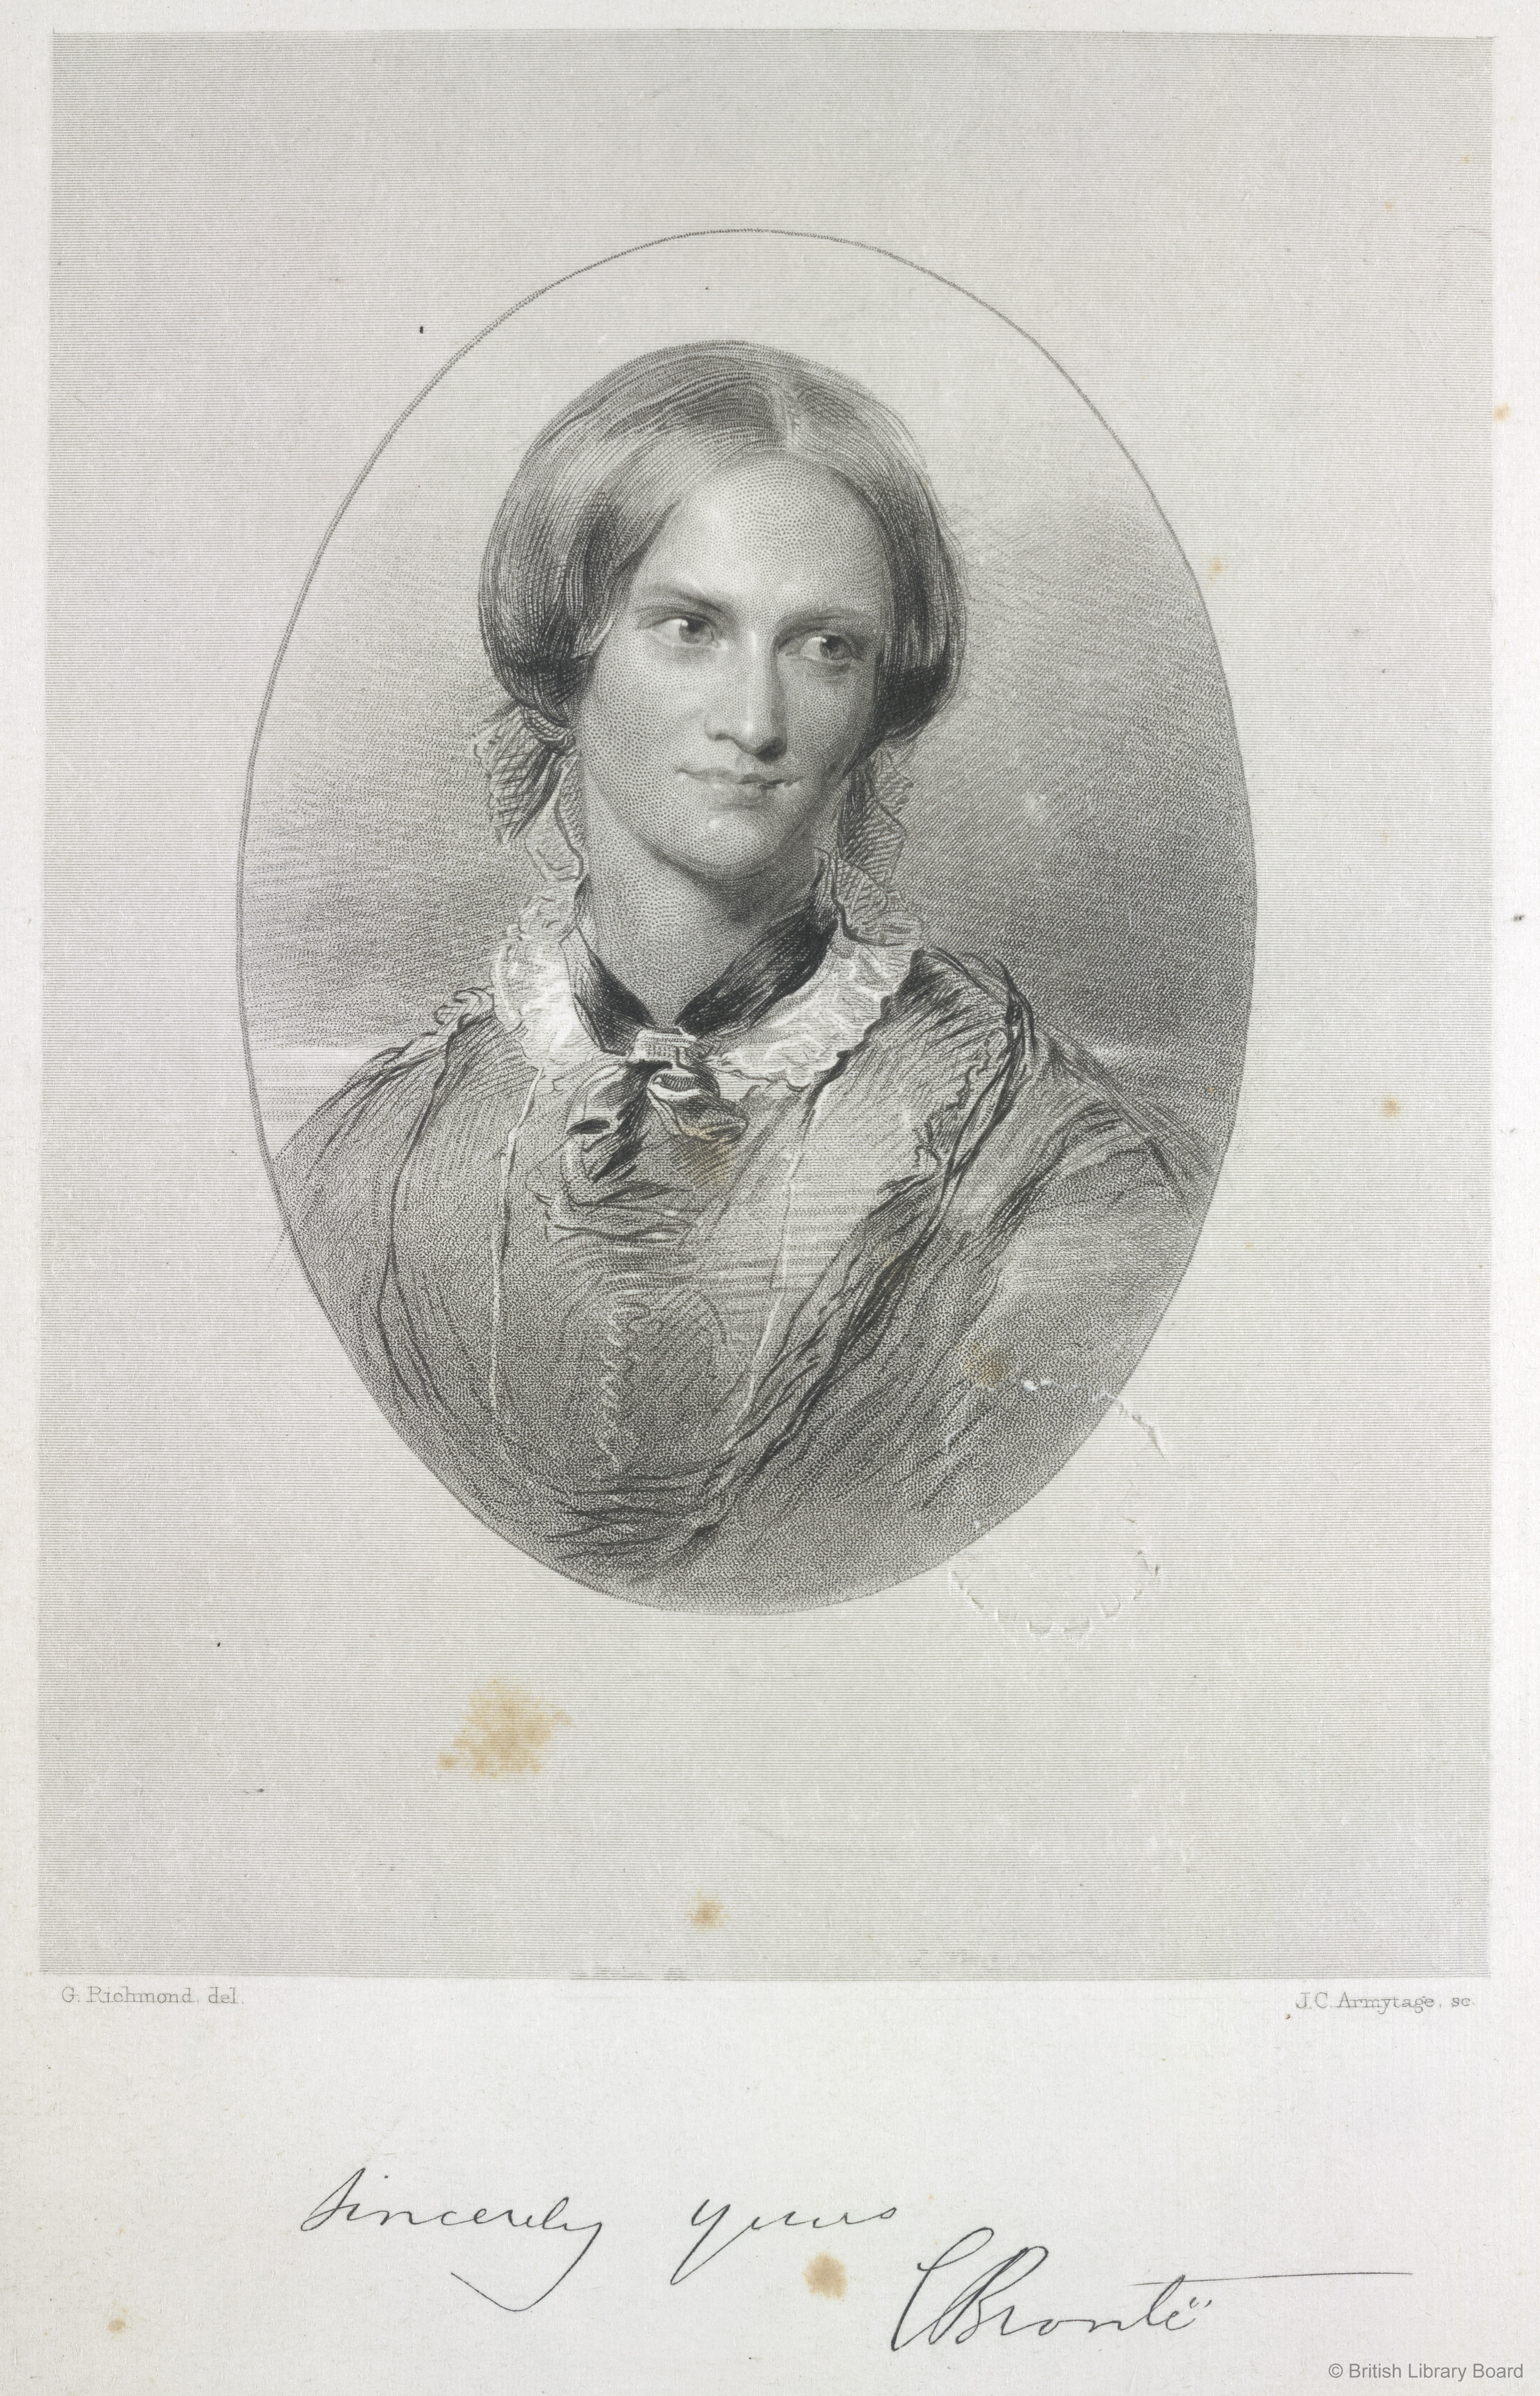 Portrait of Charlotte Brontë engraved by J. C. Armytage after George Richmond, 1857. British Library 1876.f.22.